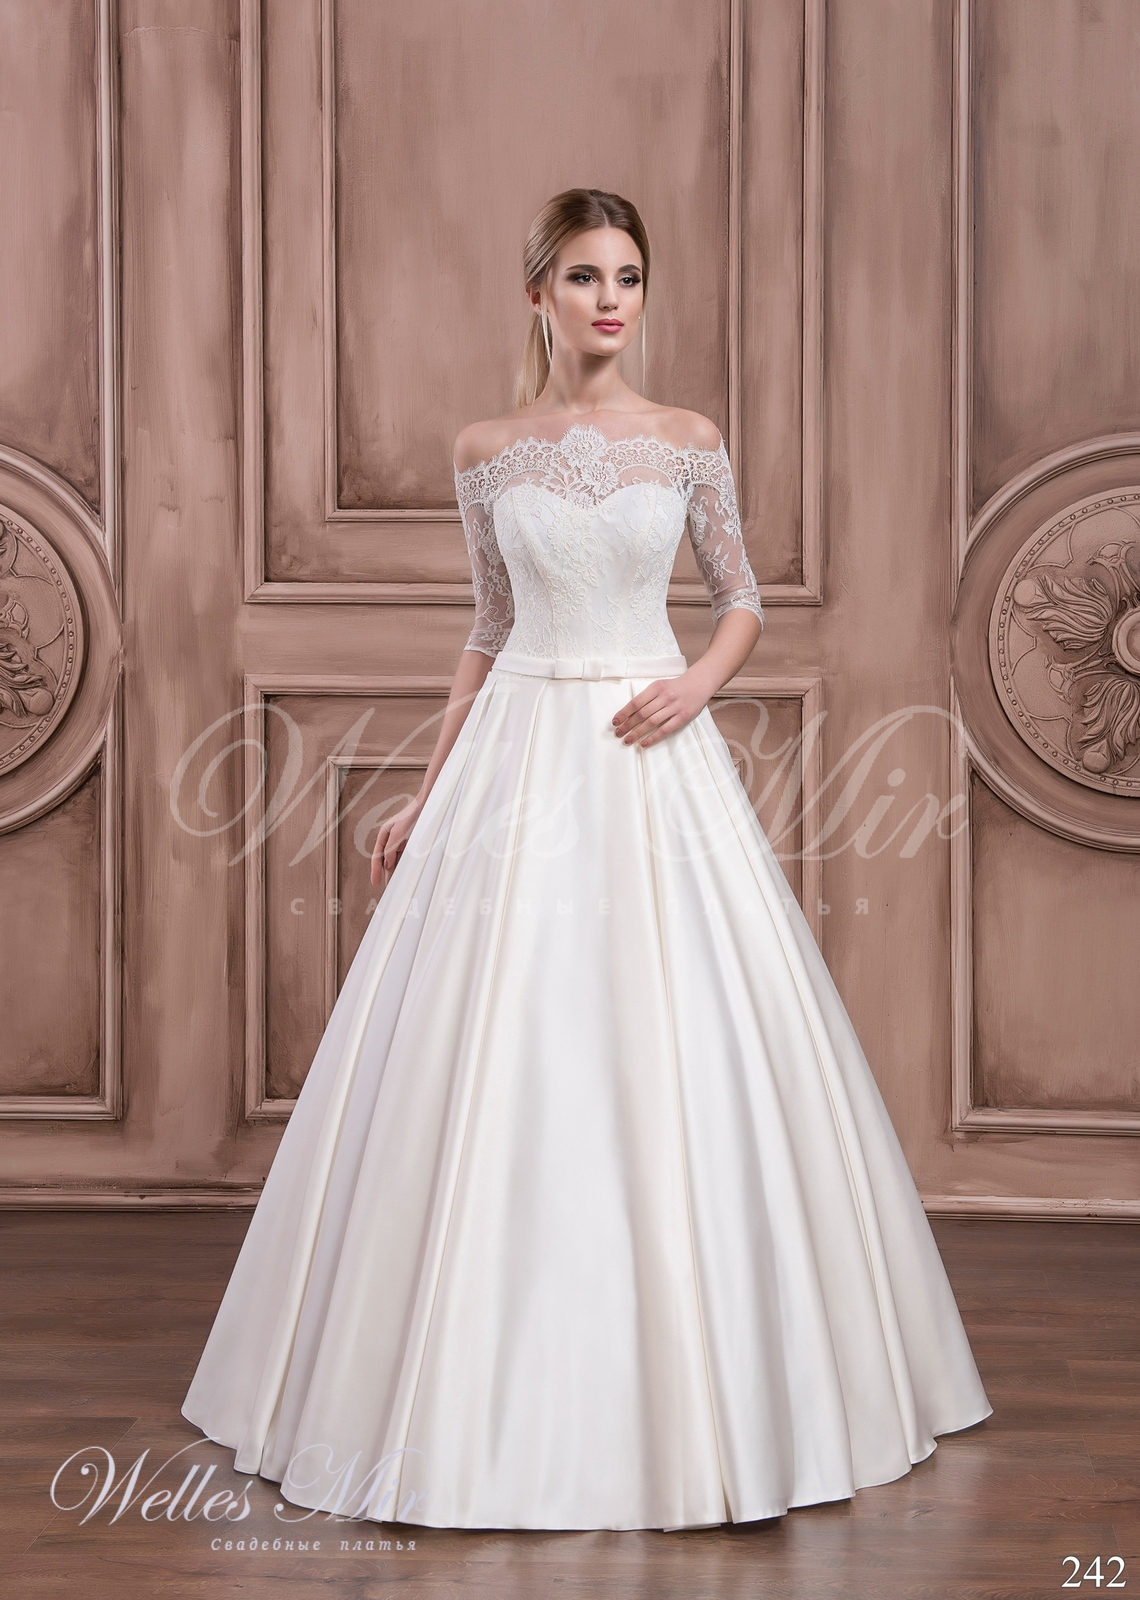 Wedding dresses 242-LG